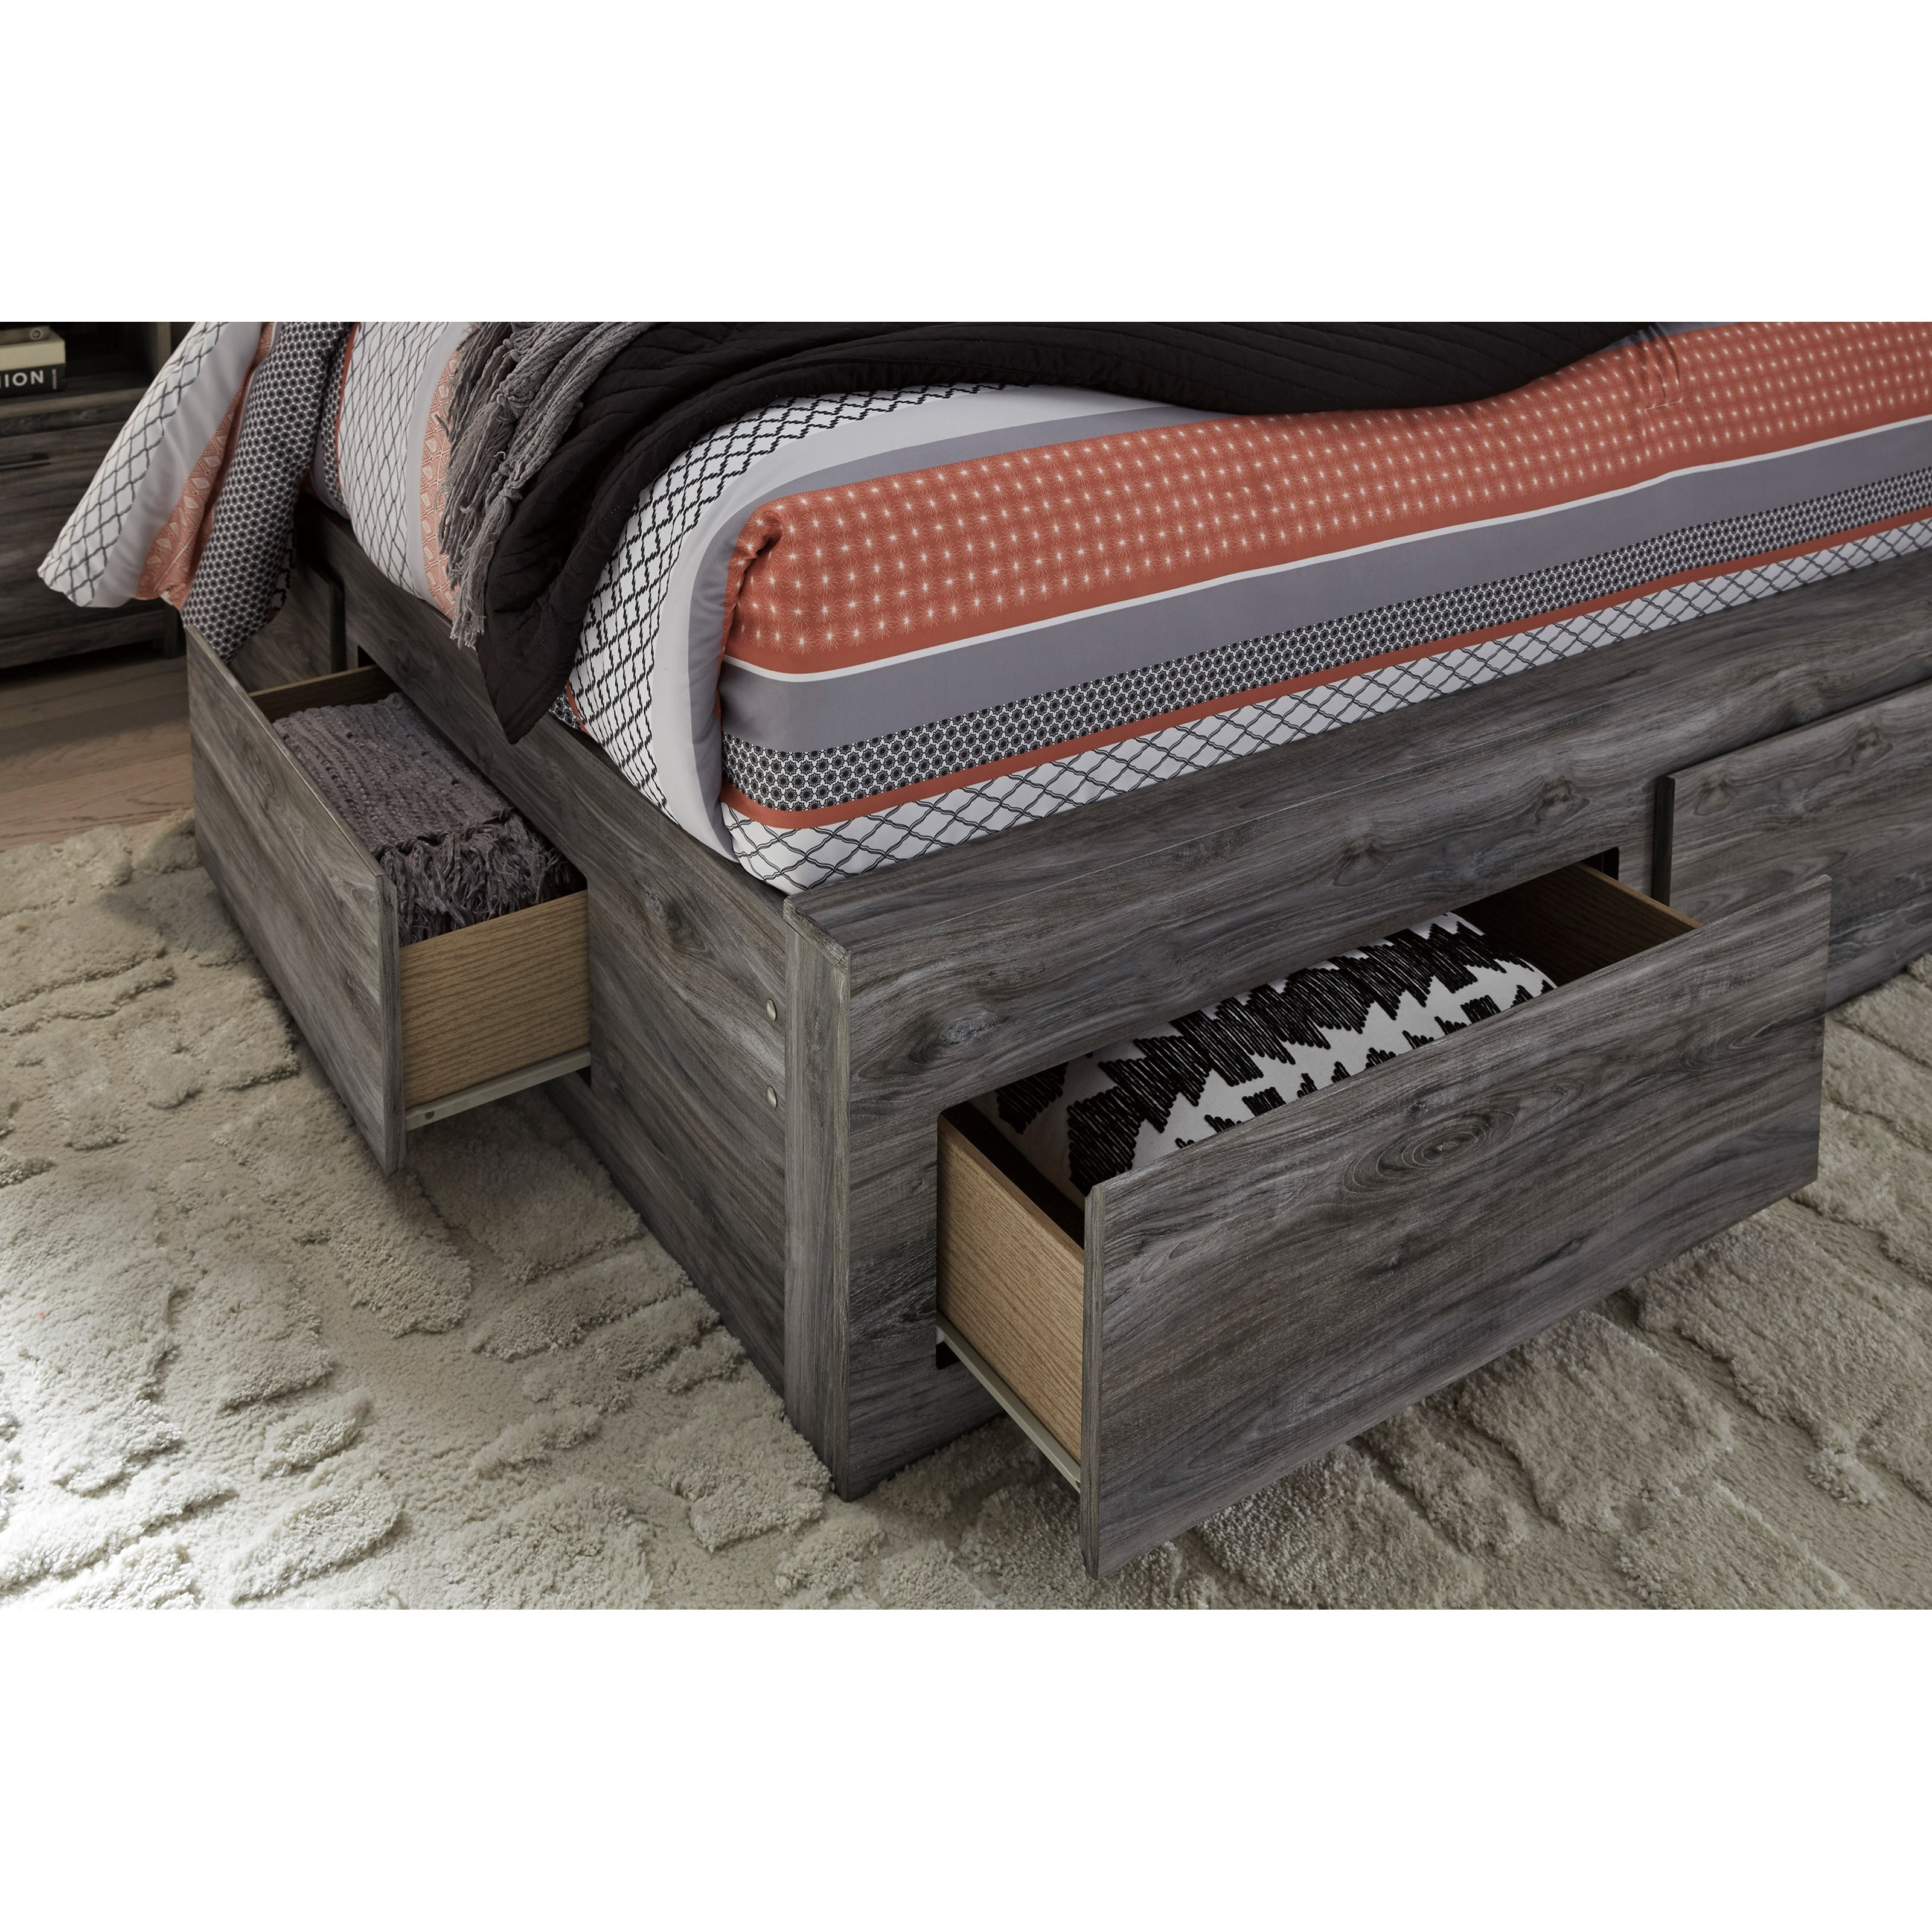 Baystorm Full Size Storage Bed B221: Ashley Signature Design Baystorm Queen Storage Bed With 6